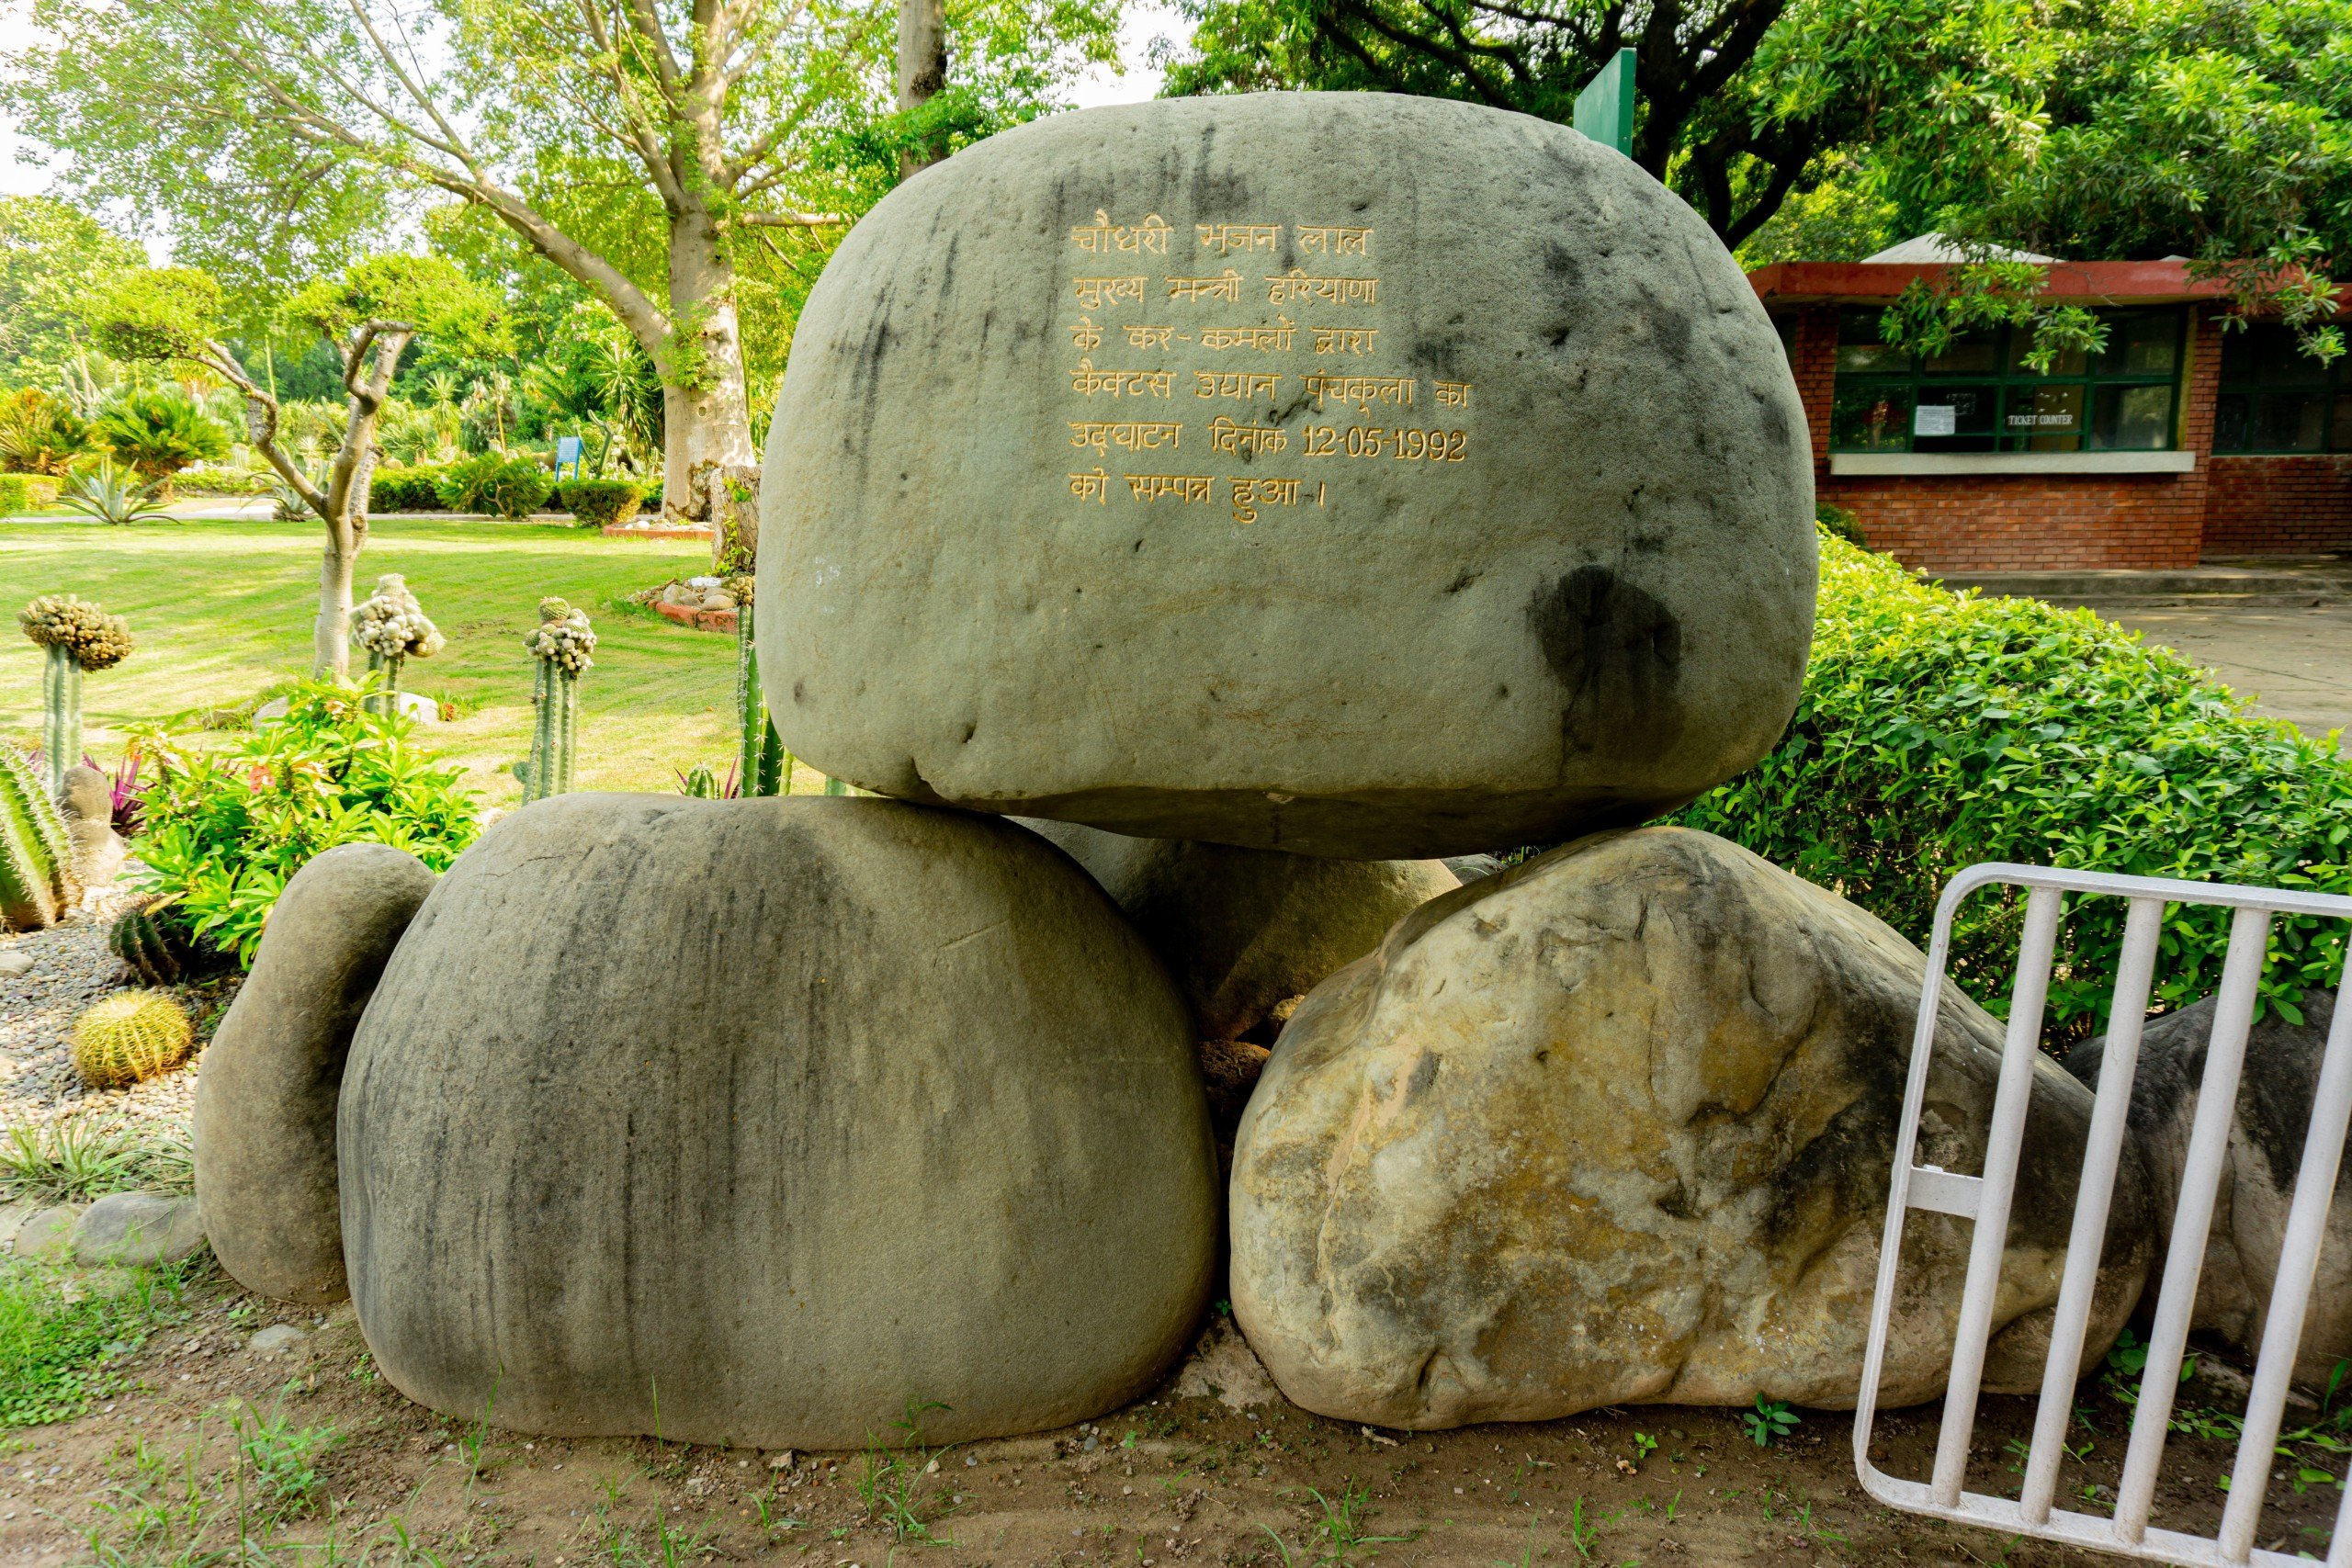 Pile of big rocks in a park